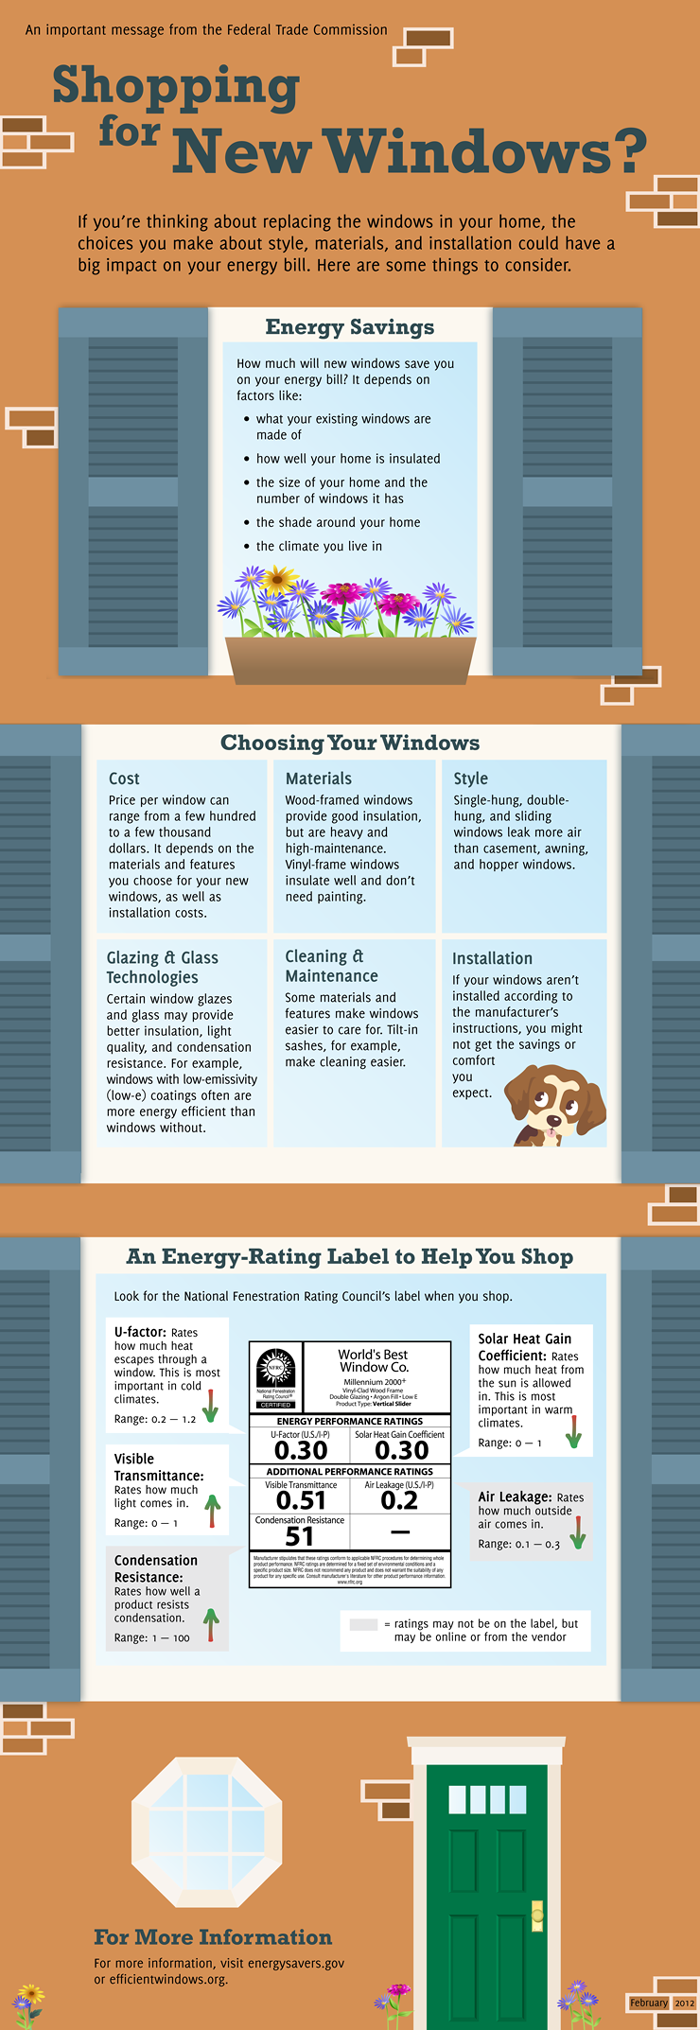 Shopping for New Windows? What to consider before replacing your home's windows and factors that could affect your energy savings.